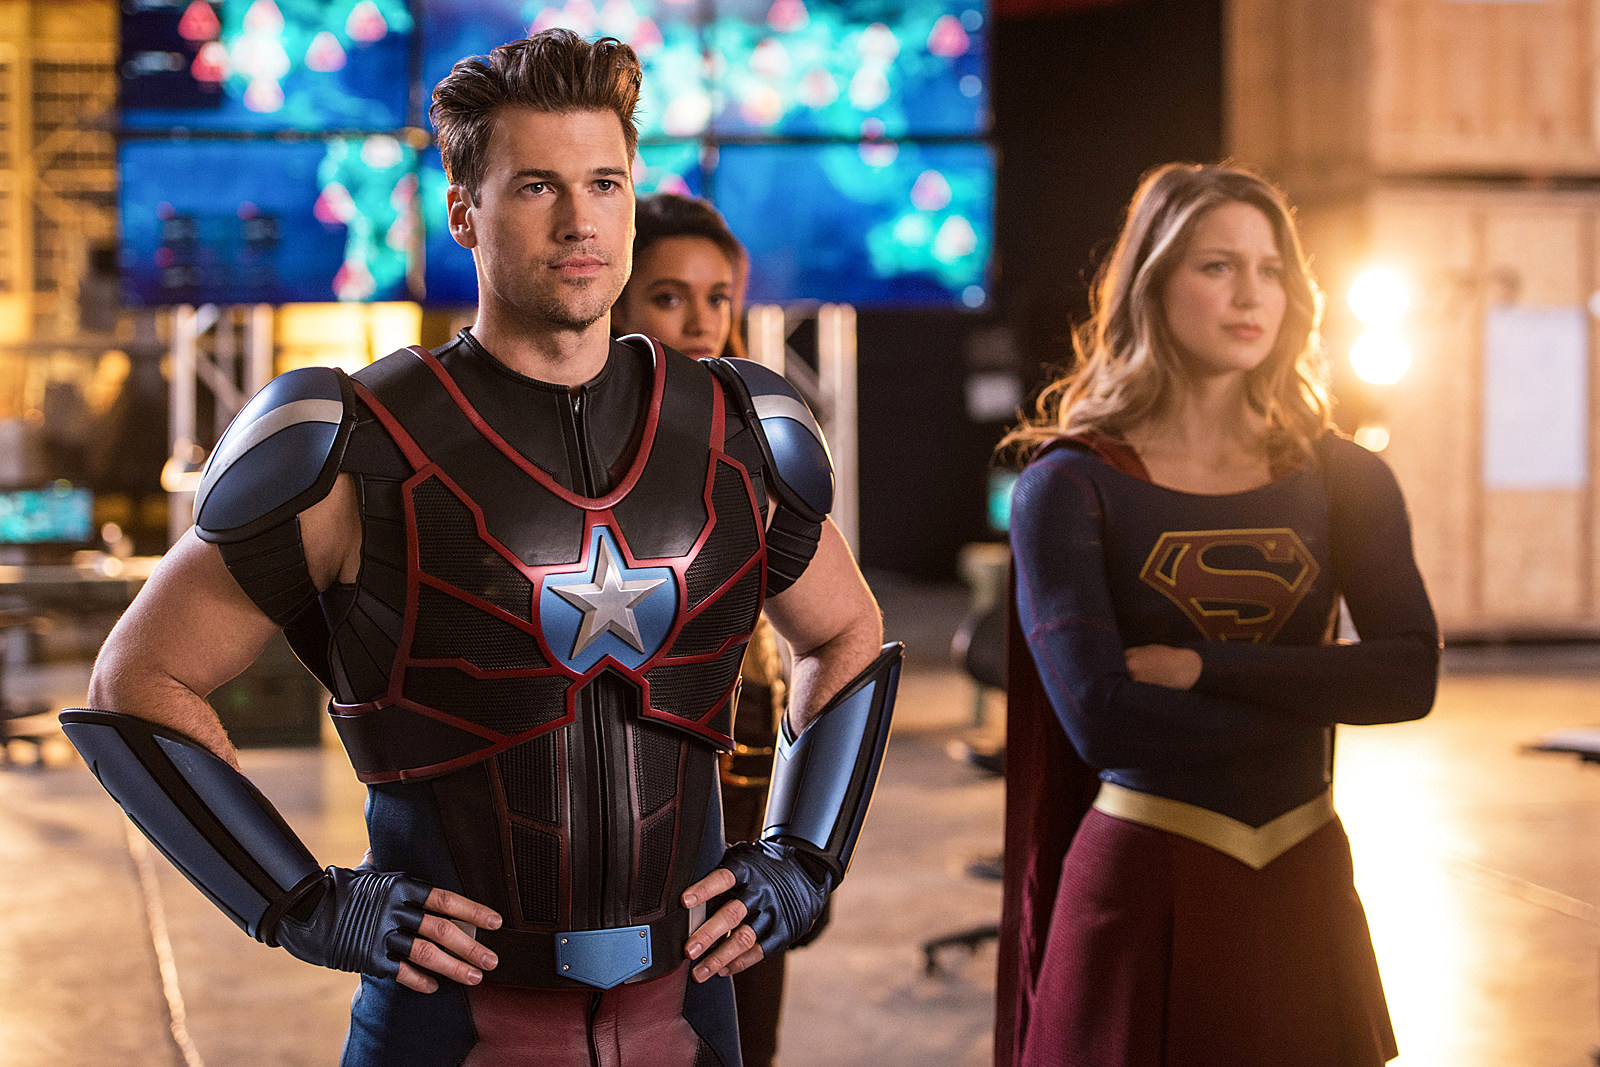 legends of tomorrow\u0027 will push \u0027supergirl\u0027 season 3 into june Supergirl CBS Season 3